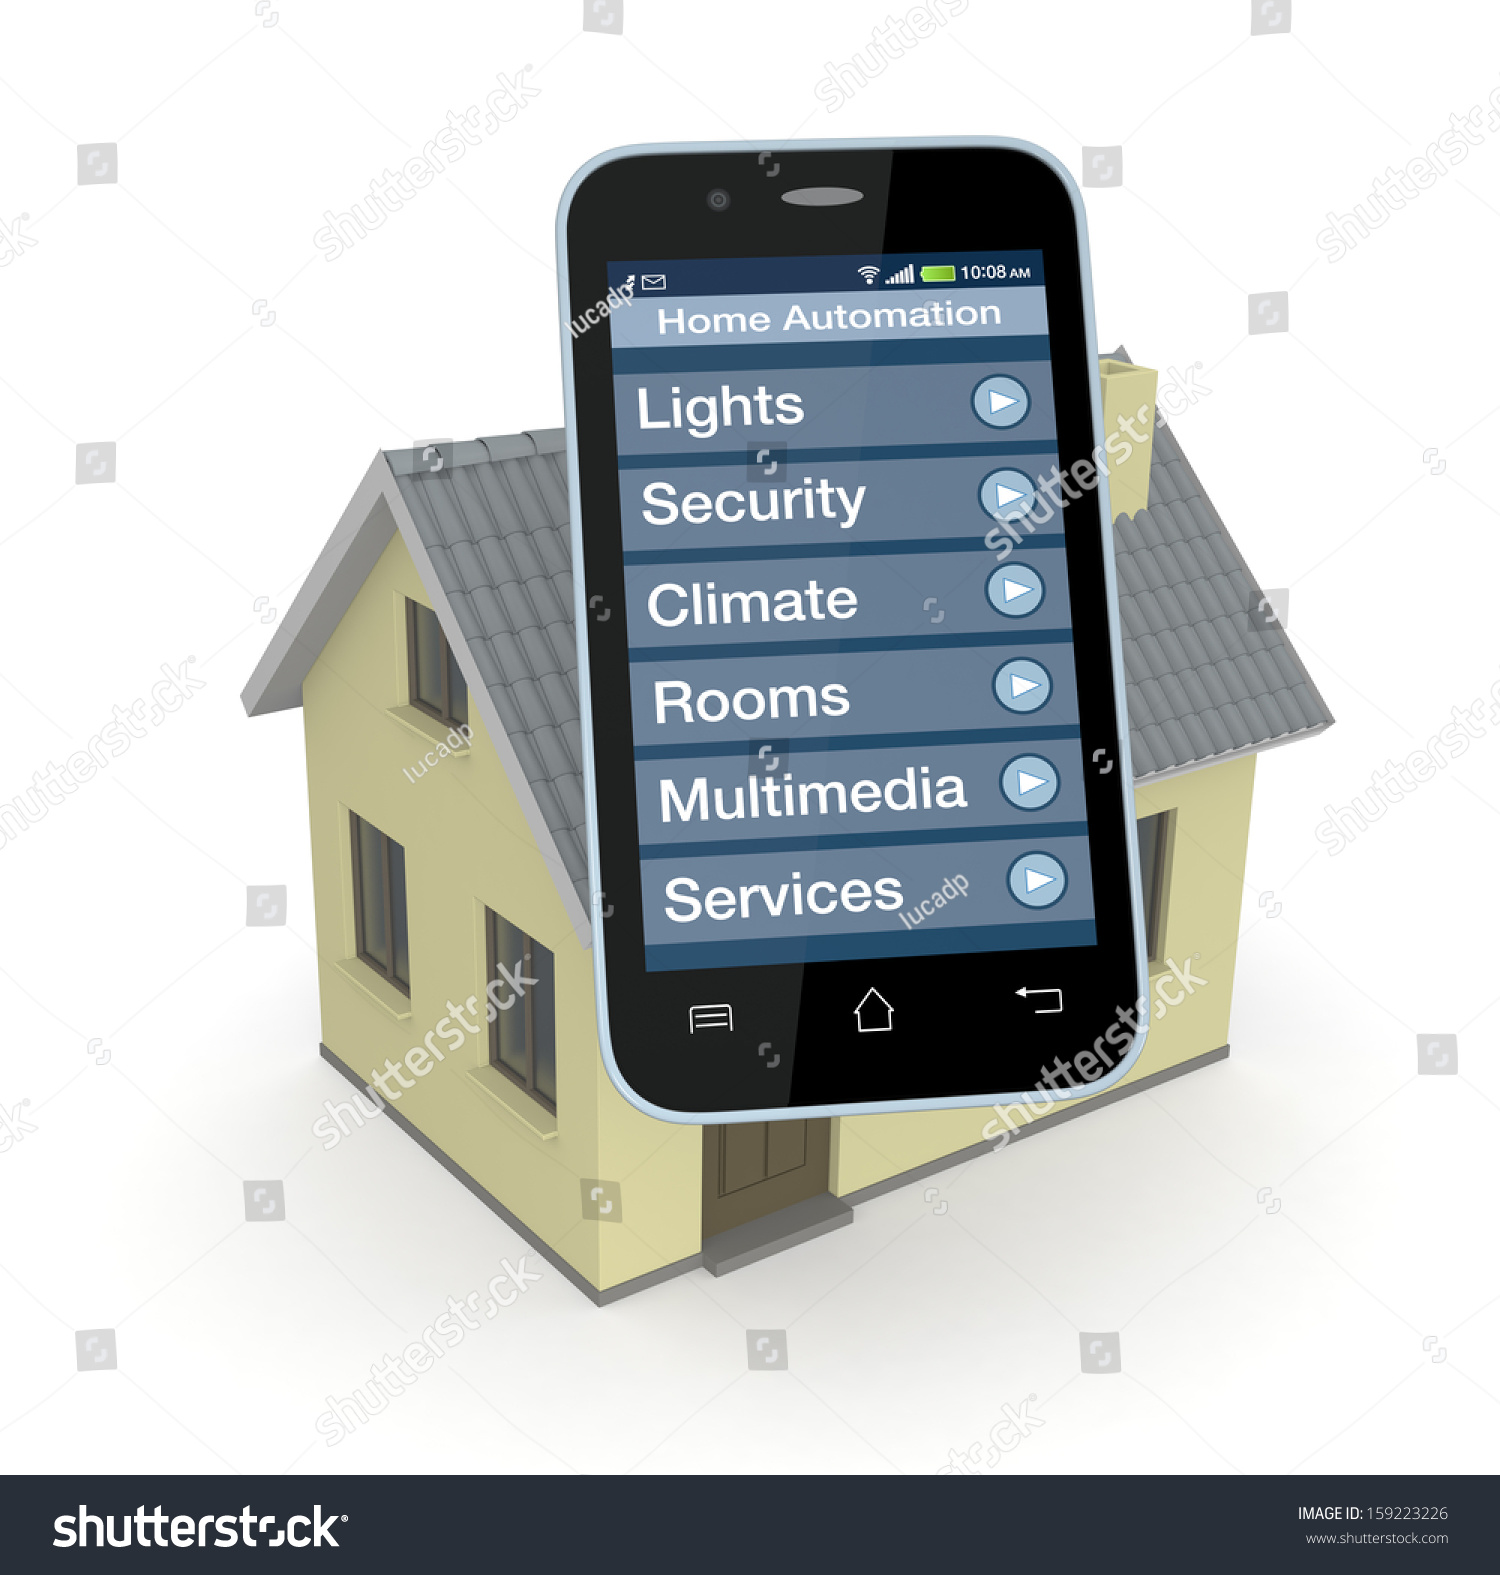 One House And Smartphone With A Software For Home